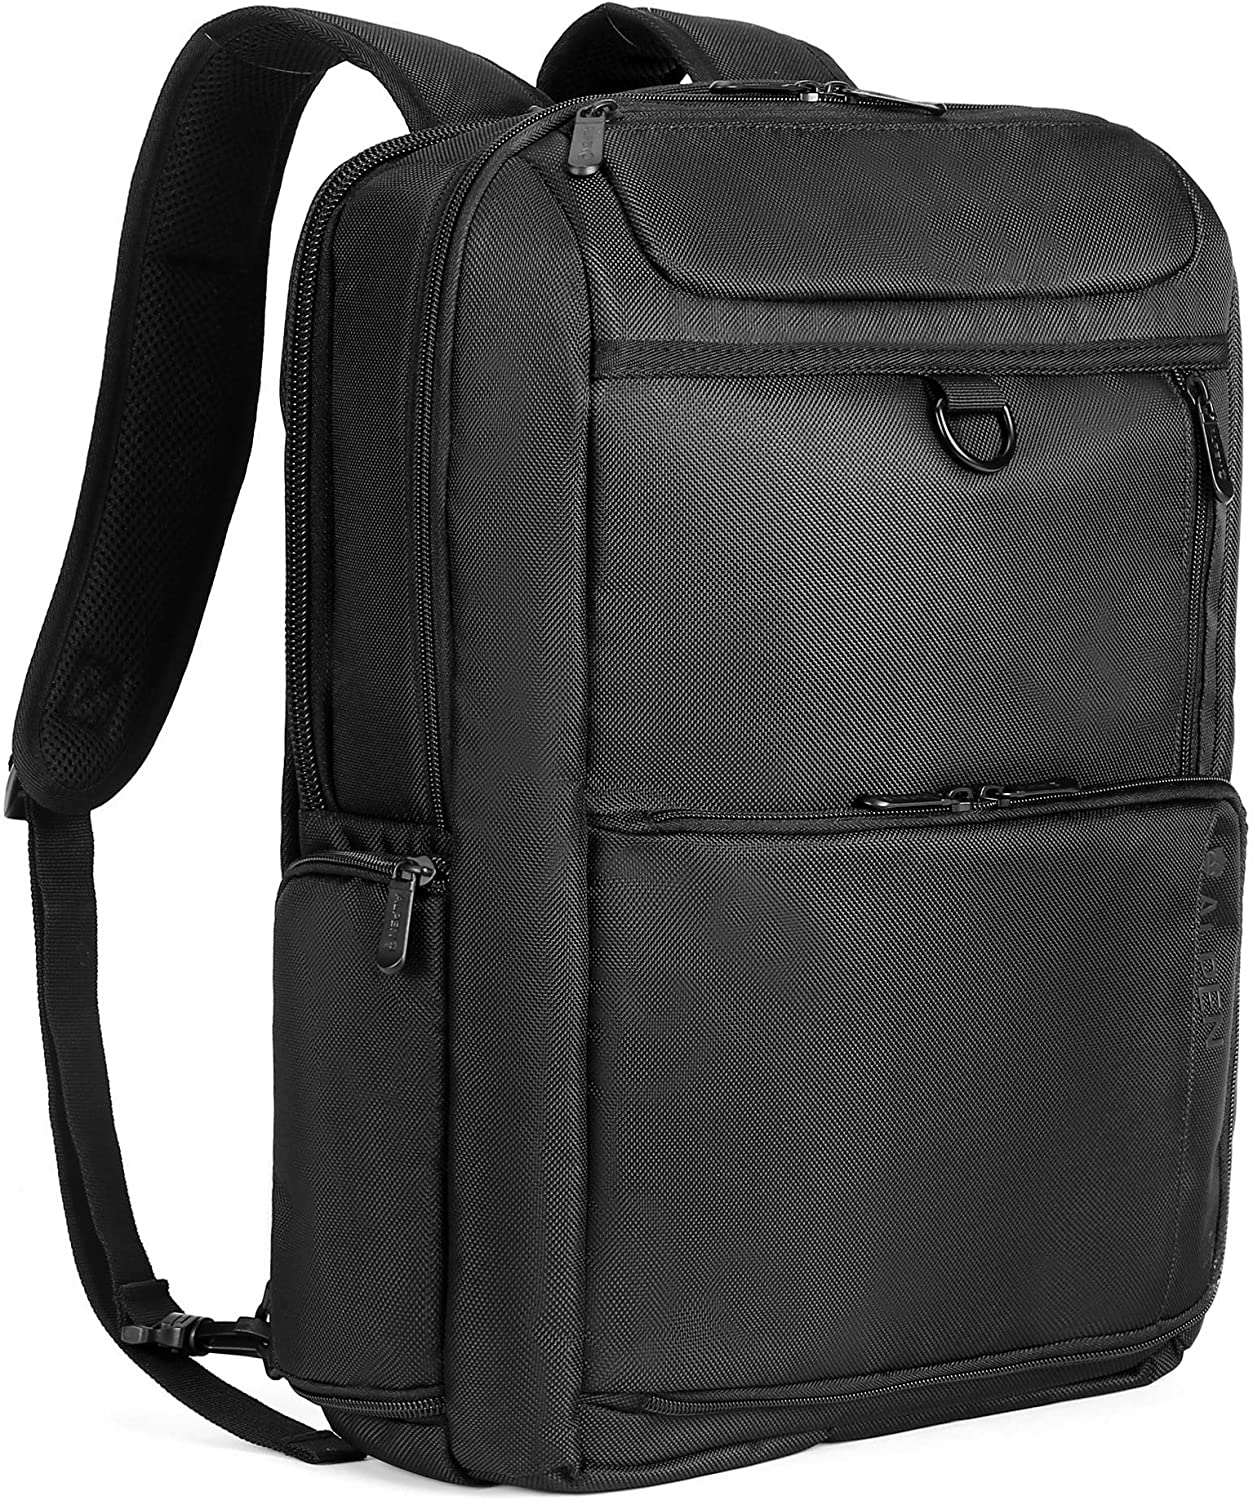 Swiss Alpen – City Collection Slim Backpack – Water Resistant Durable 1680D Large Laptop Backpack for Travel, School Business – Fits 15.6 Laptop – Black Exclusive